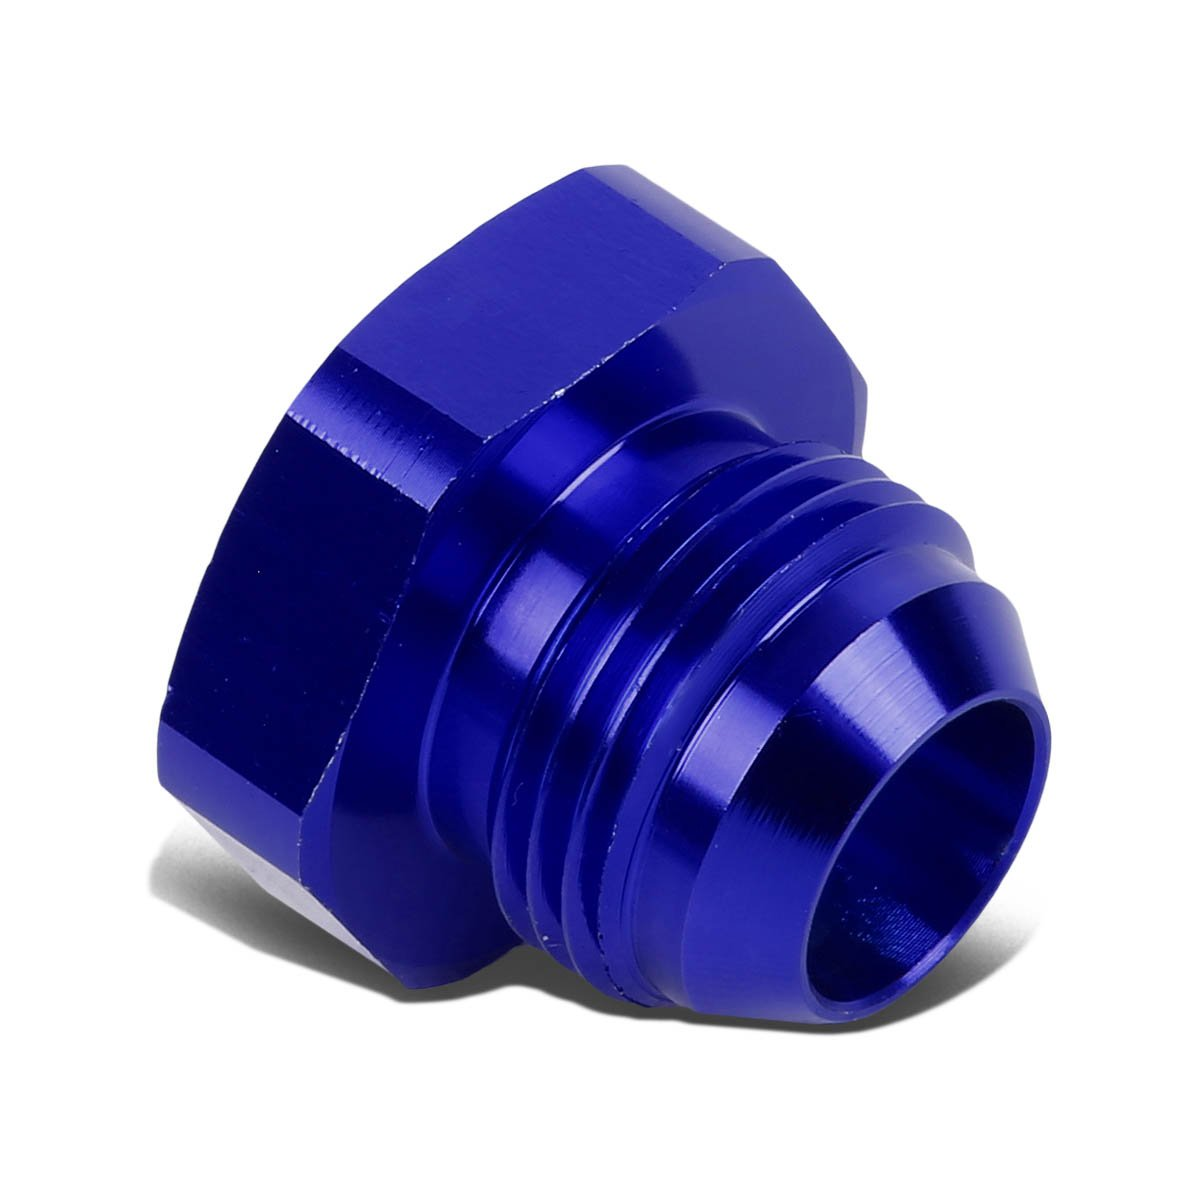 Blue 12AN AN-12 3//4 inches Flare Bolt Aluminum Anodized Nut Plug Lock Fitting Adapter